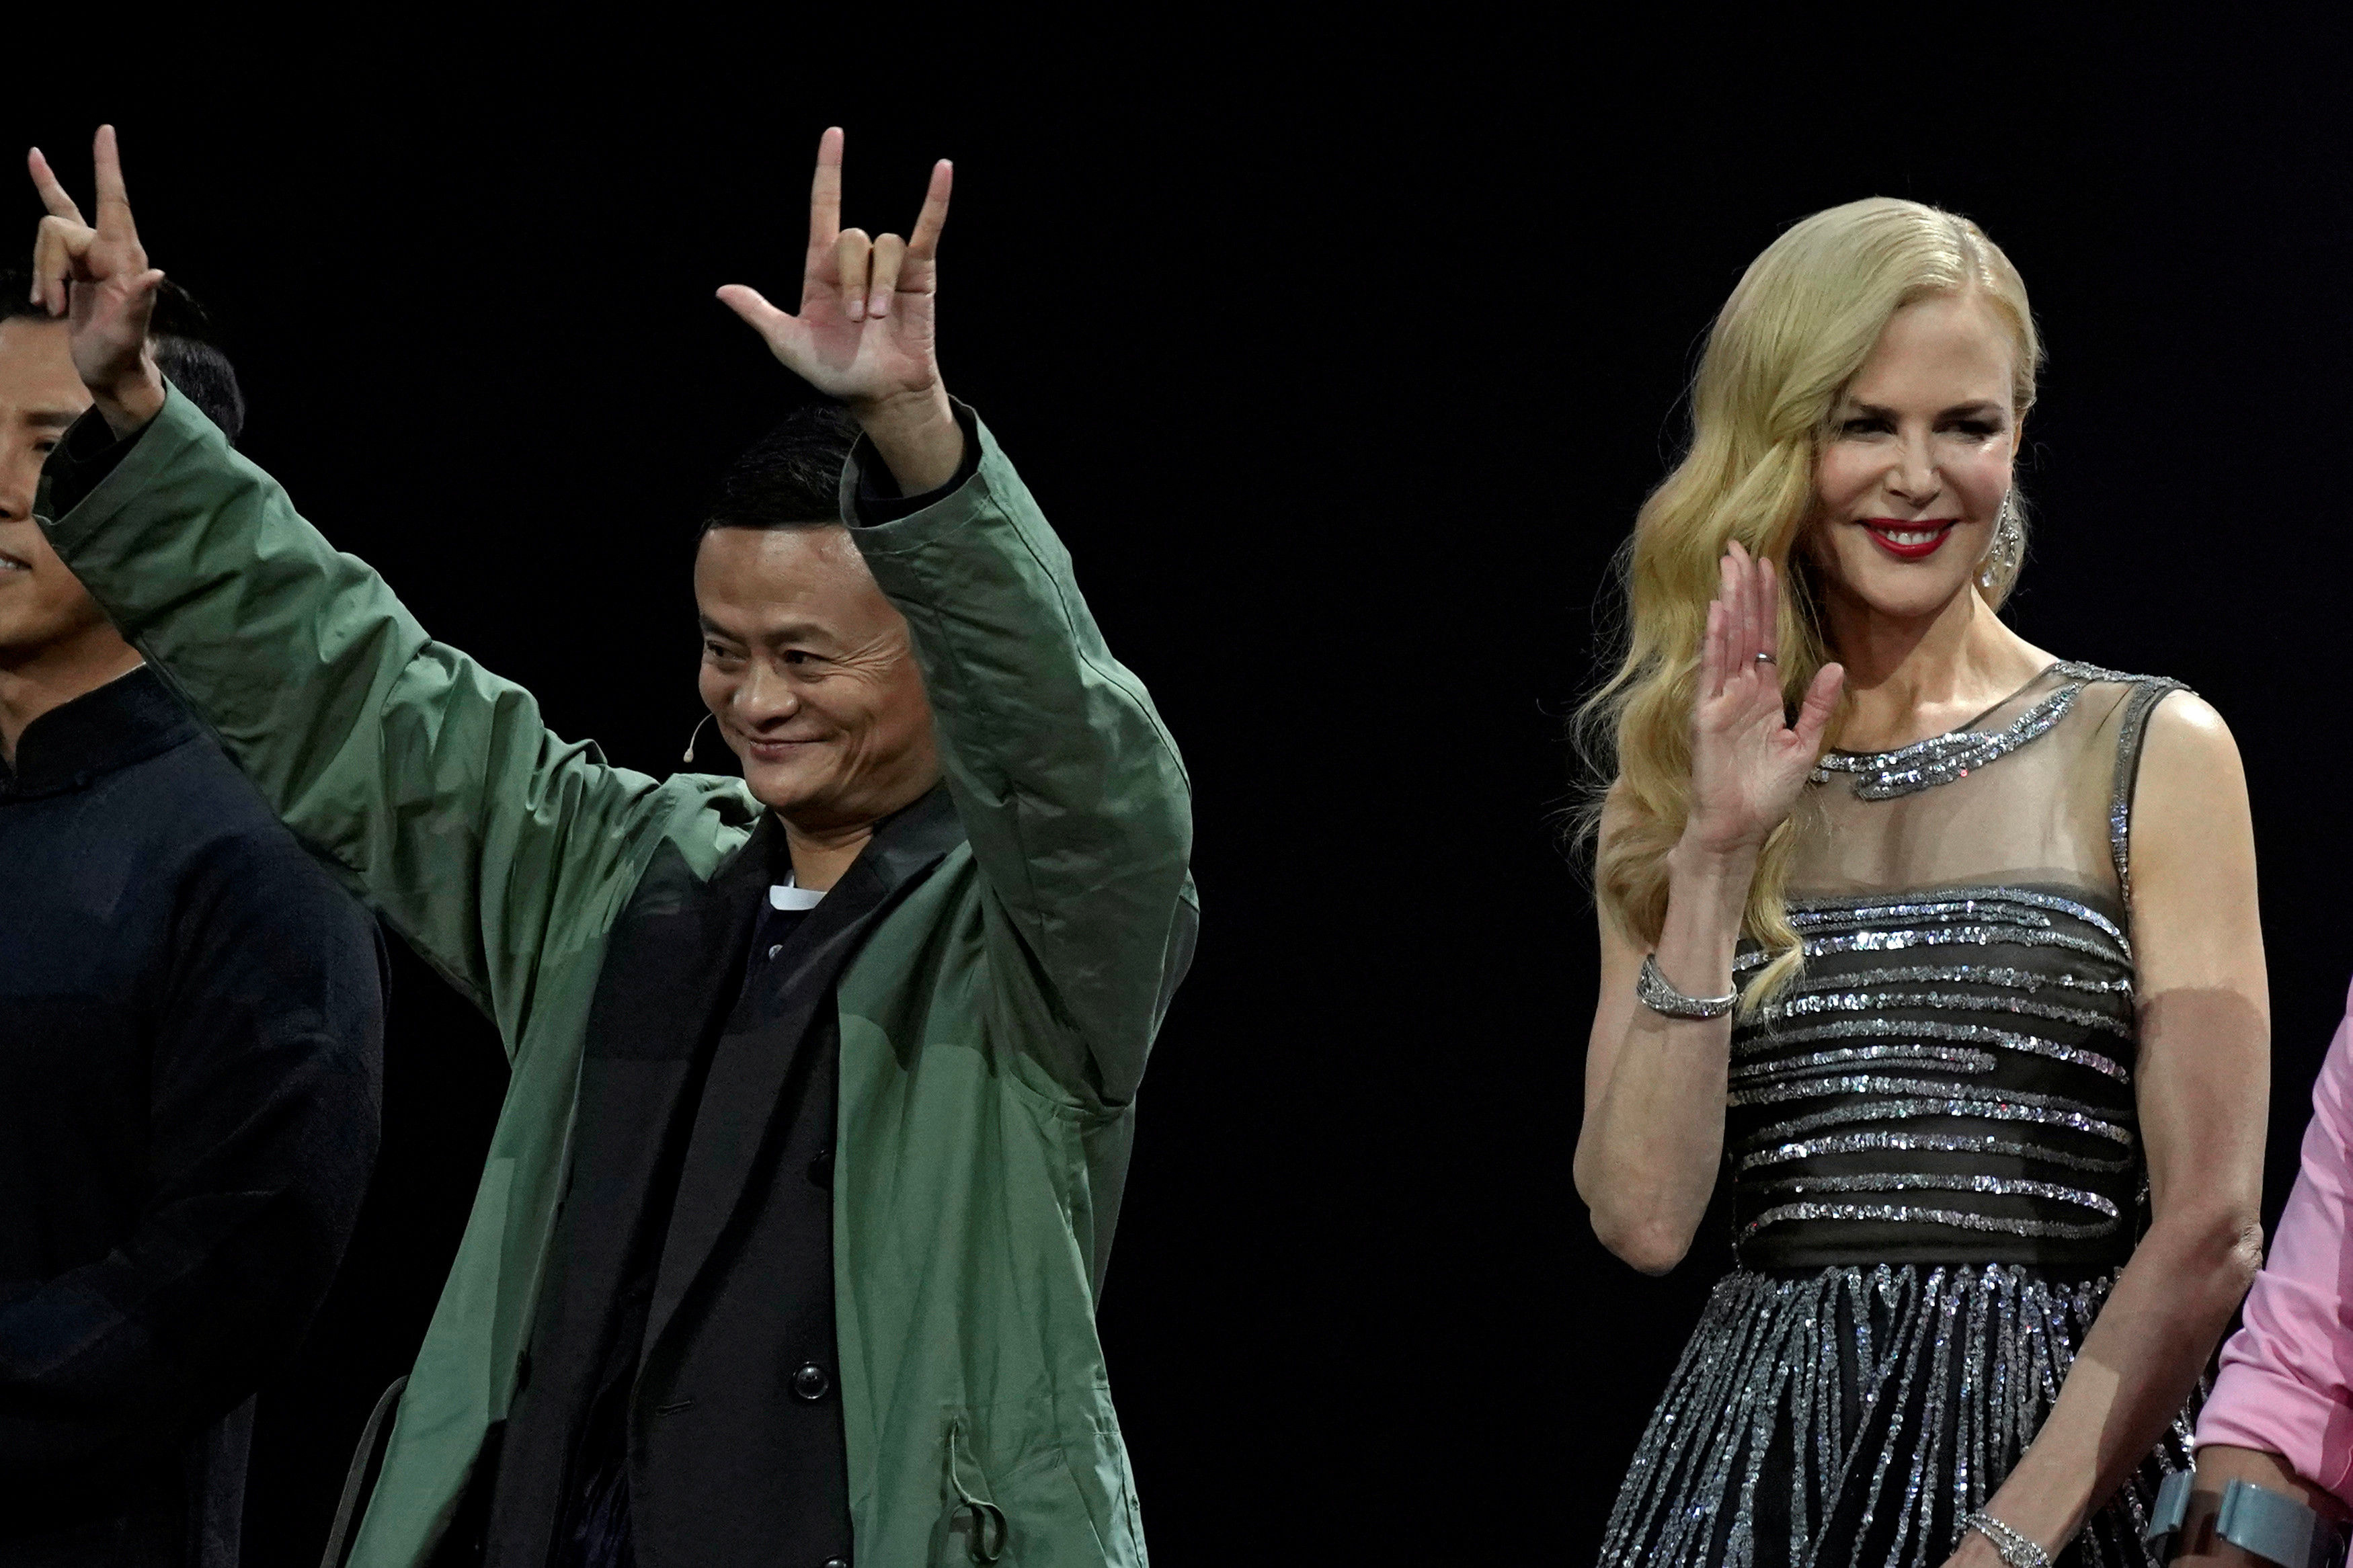 Alibaba chair Jack Ma with Nicole Kidman at a Double 11 event.